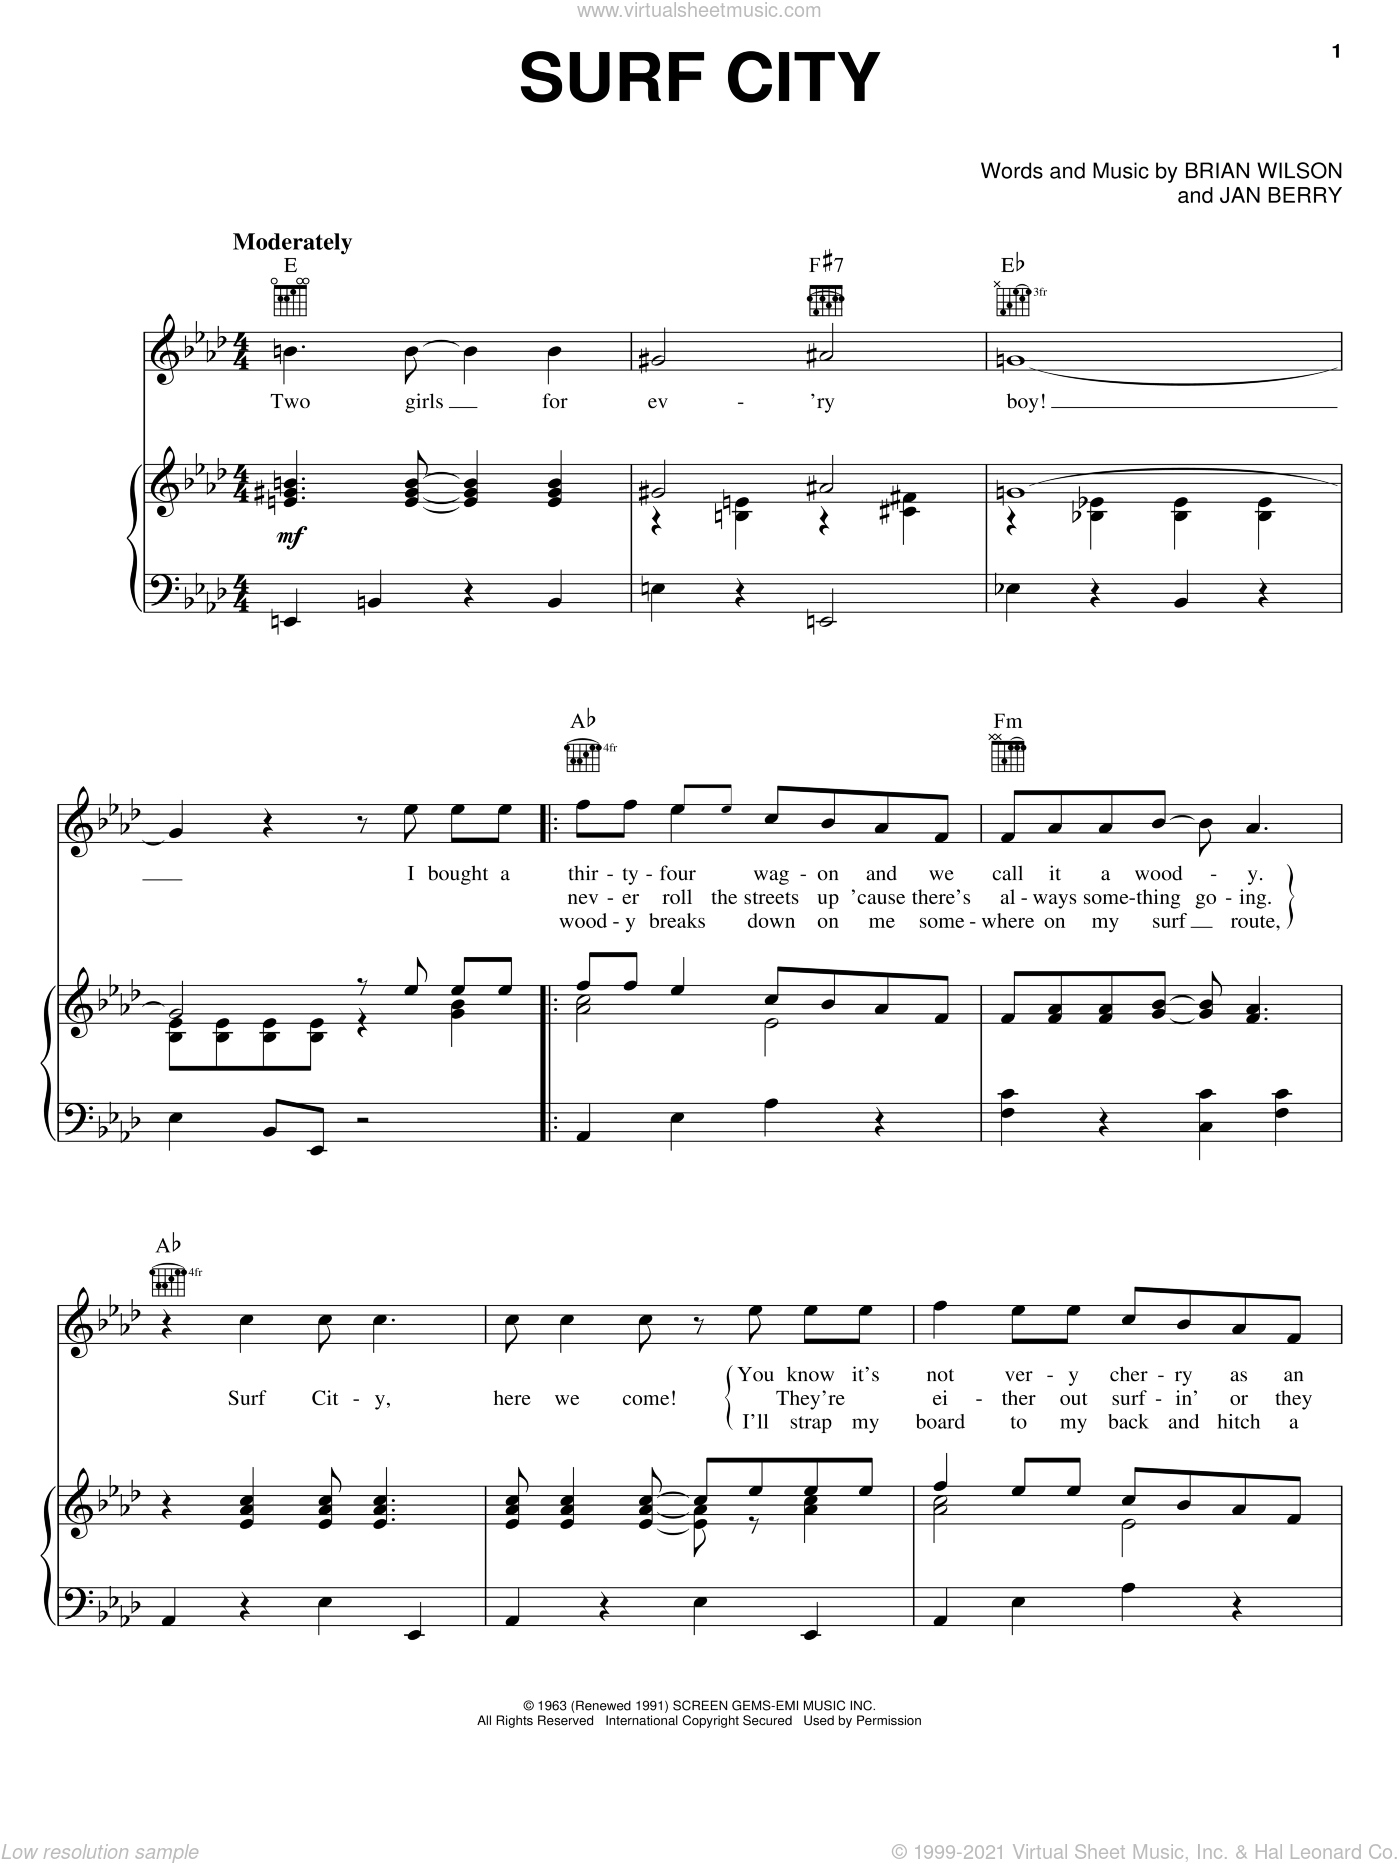 Surf City sheet music for voice, piano or guitar by Jan & Dean, Brian Wilson and Jan Berry, intermediate skill level